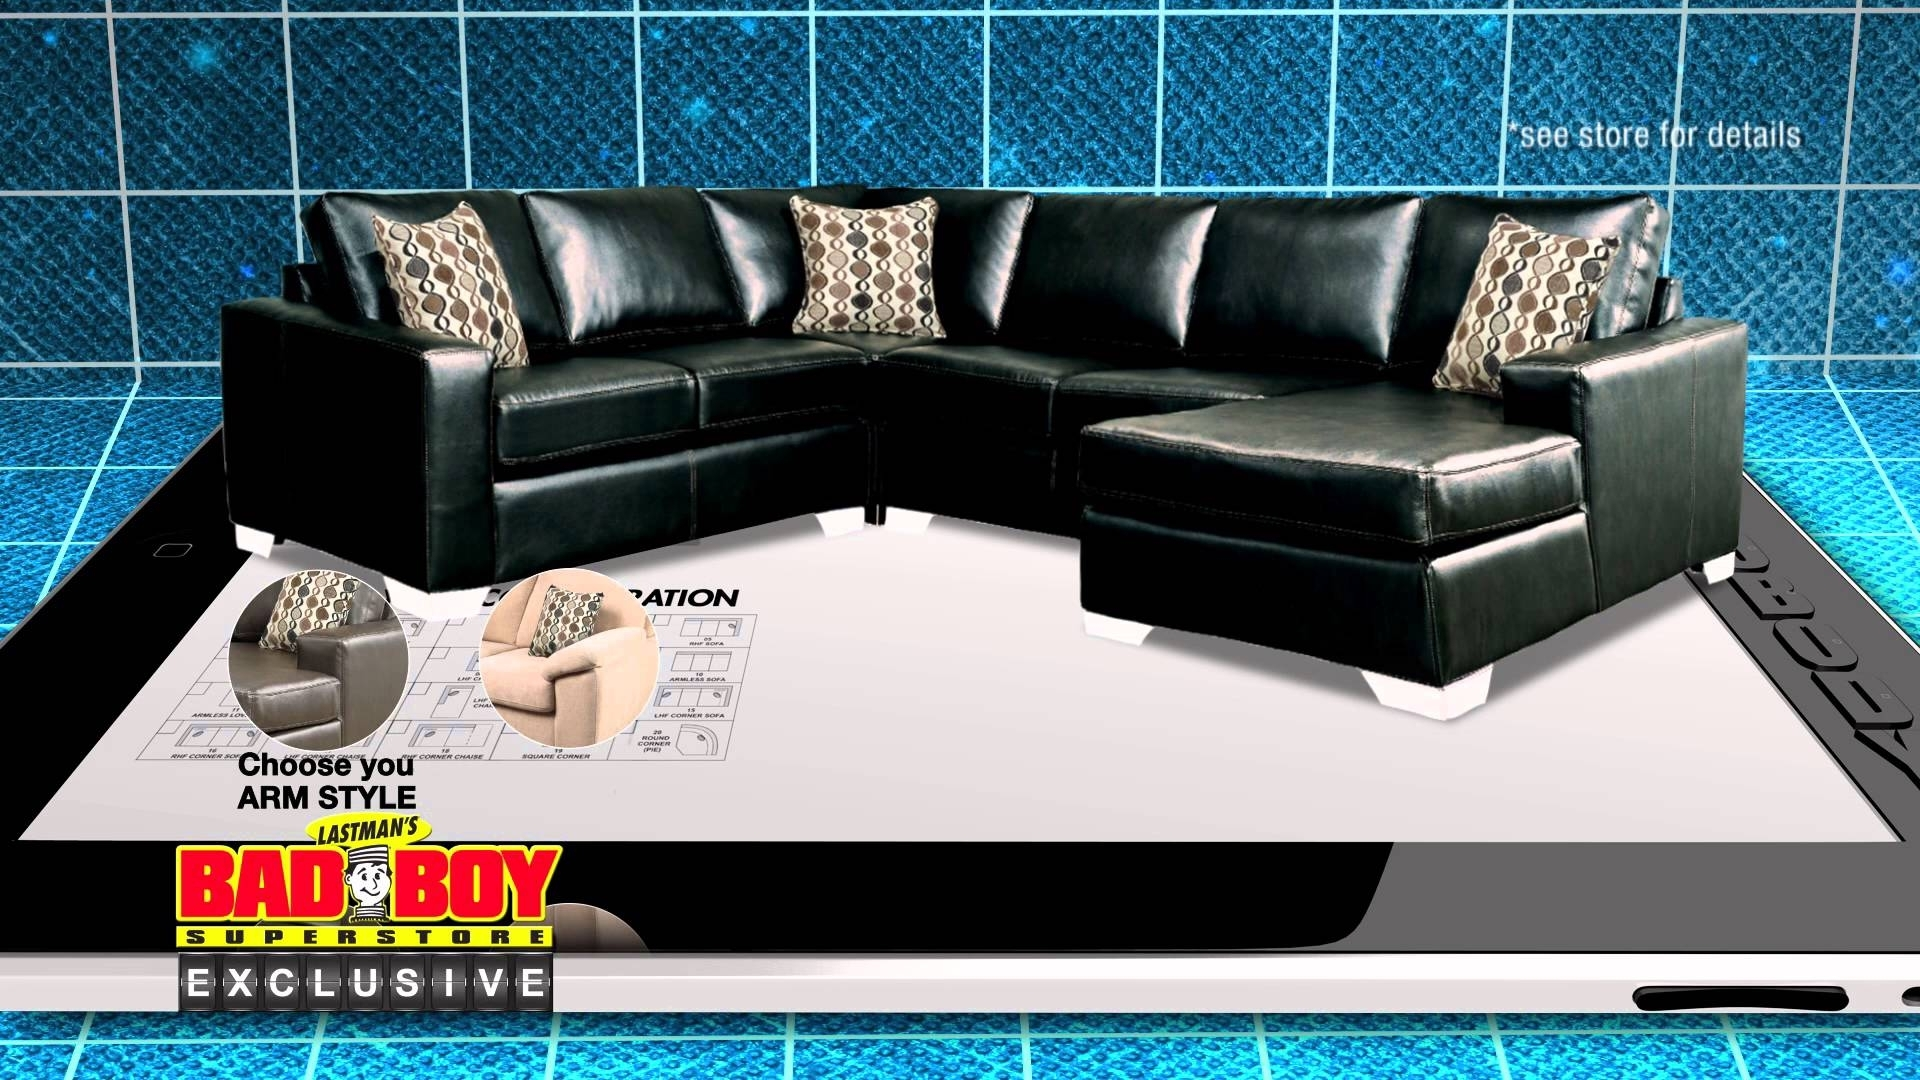 Have It Your Way, Customize Your Sofa At Lastman's Bad Boy – Youtube Throughout Sectional Sofas At Bad Boy (View 14 of 15)